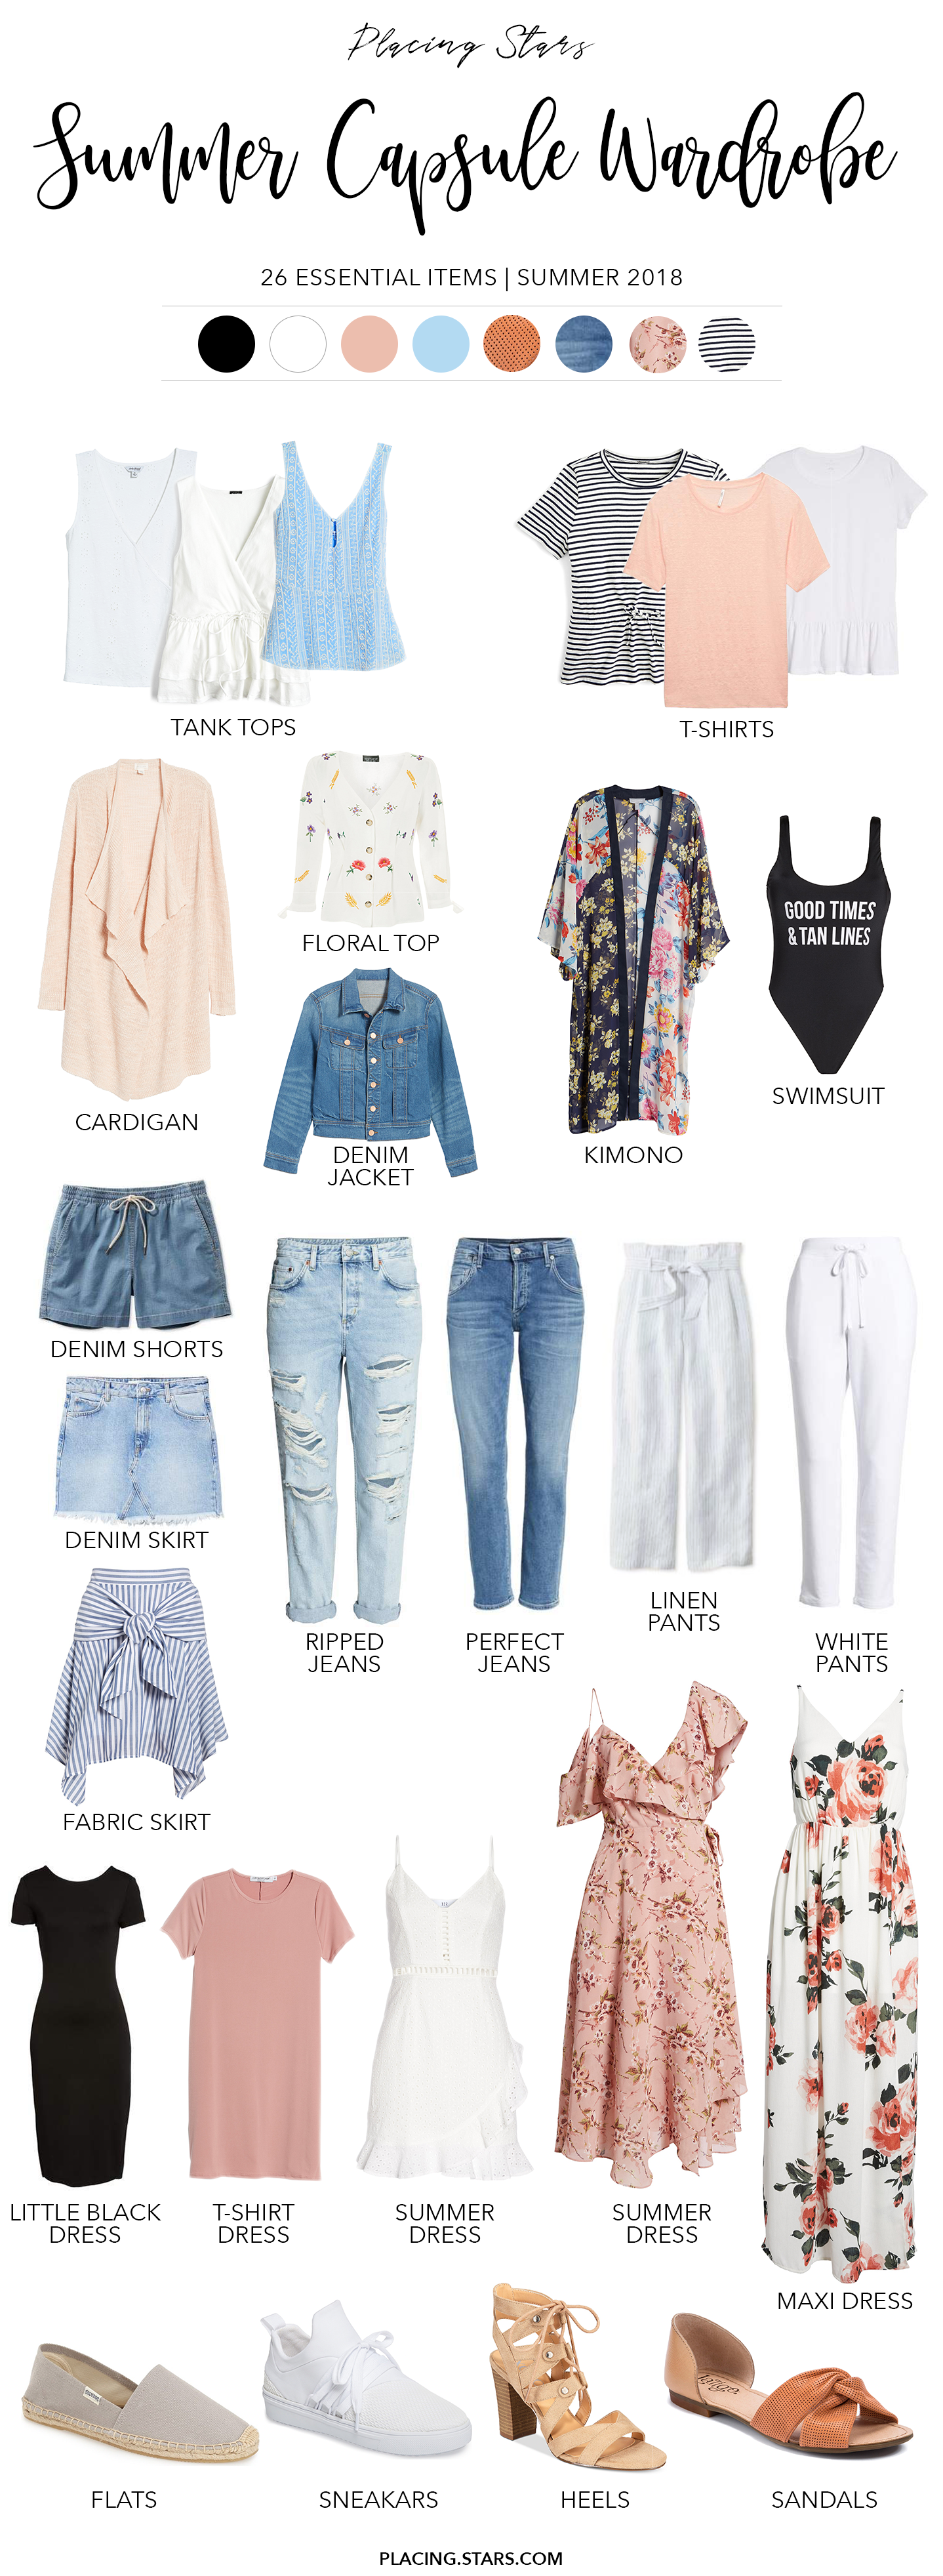 summer capsule wardrobe 2018 pin